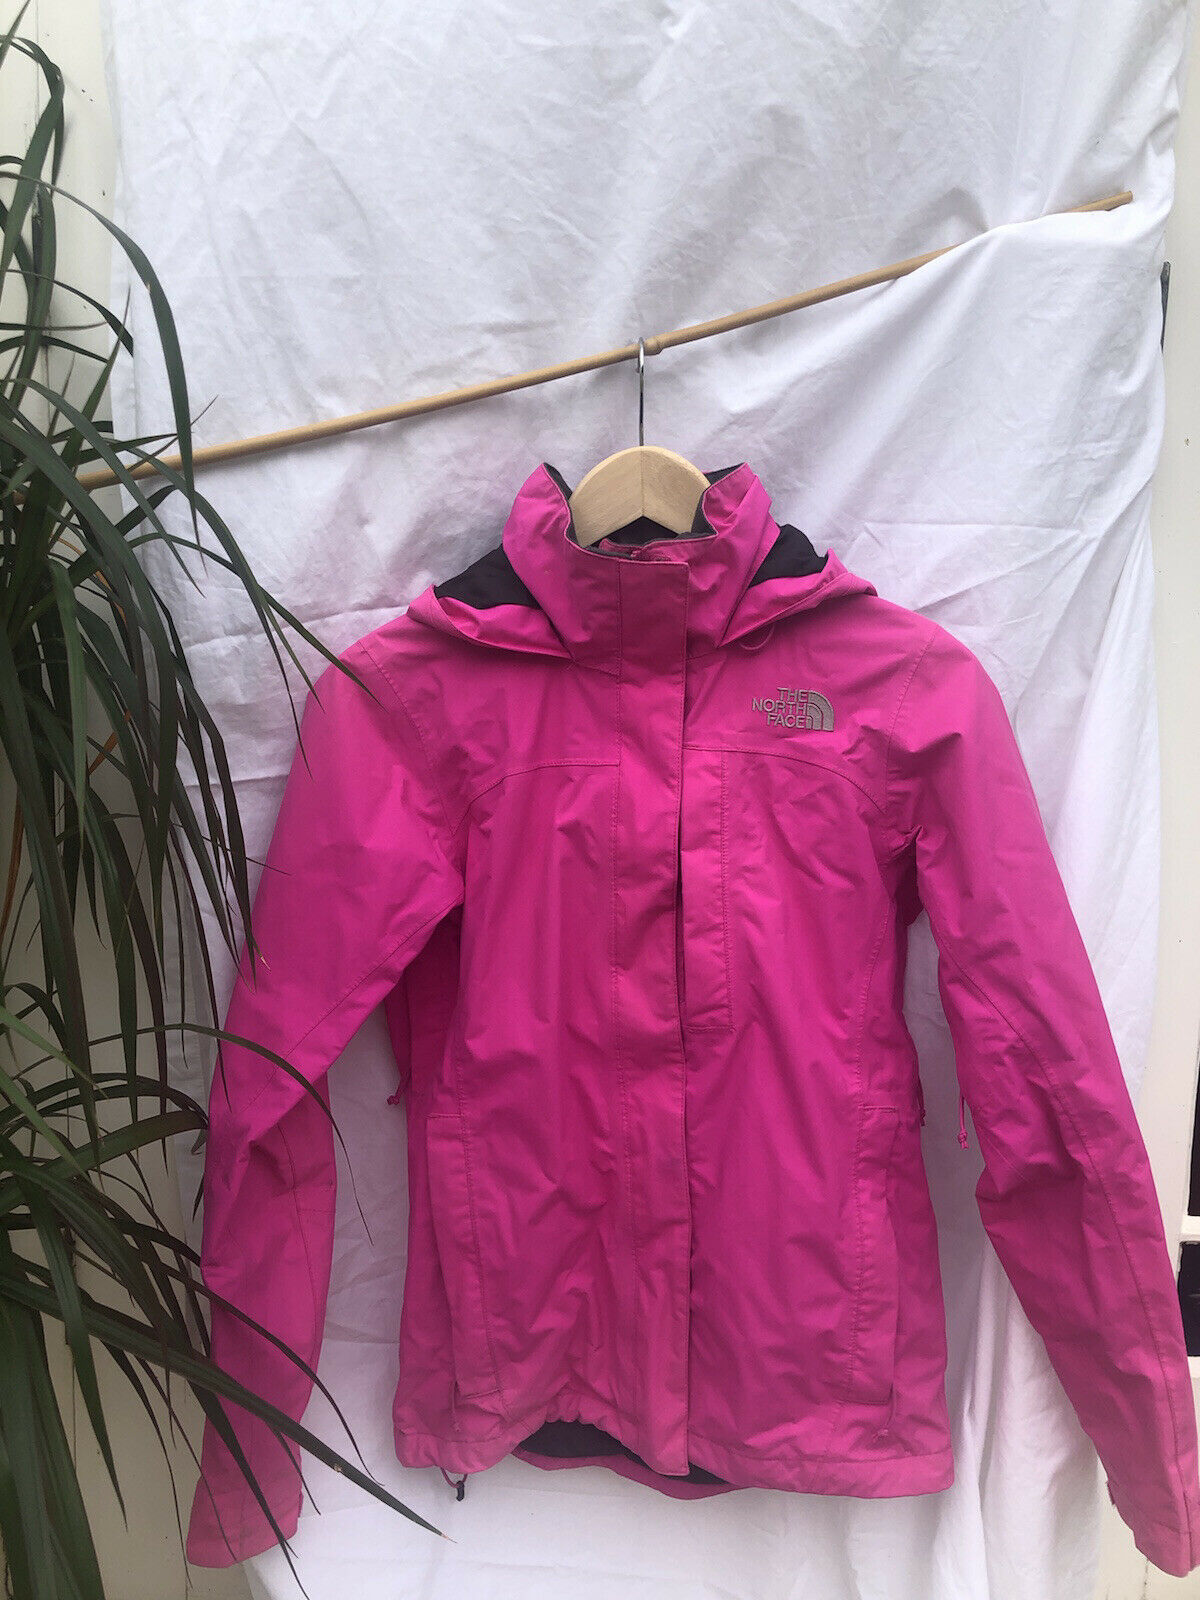 Womens The North Face Jacket/Coat size UK XS Waterproof Hyvent Pink